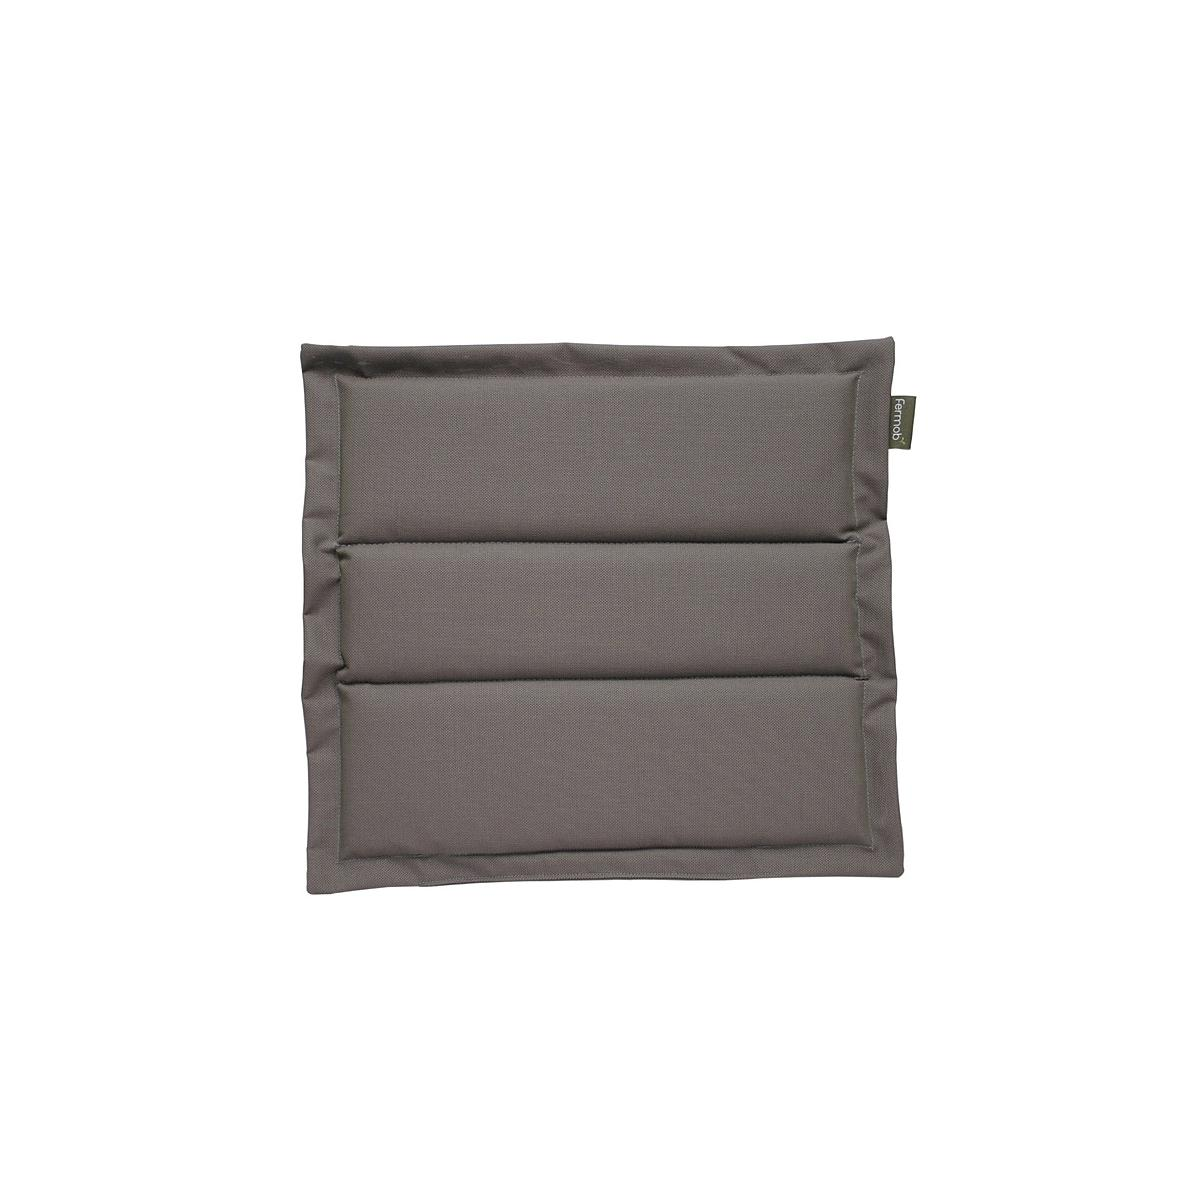 LUXEMBOURG  by Fermob Coussin chaise et bridge taupe